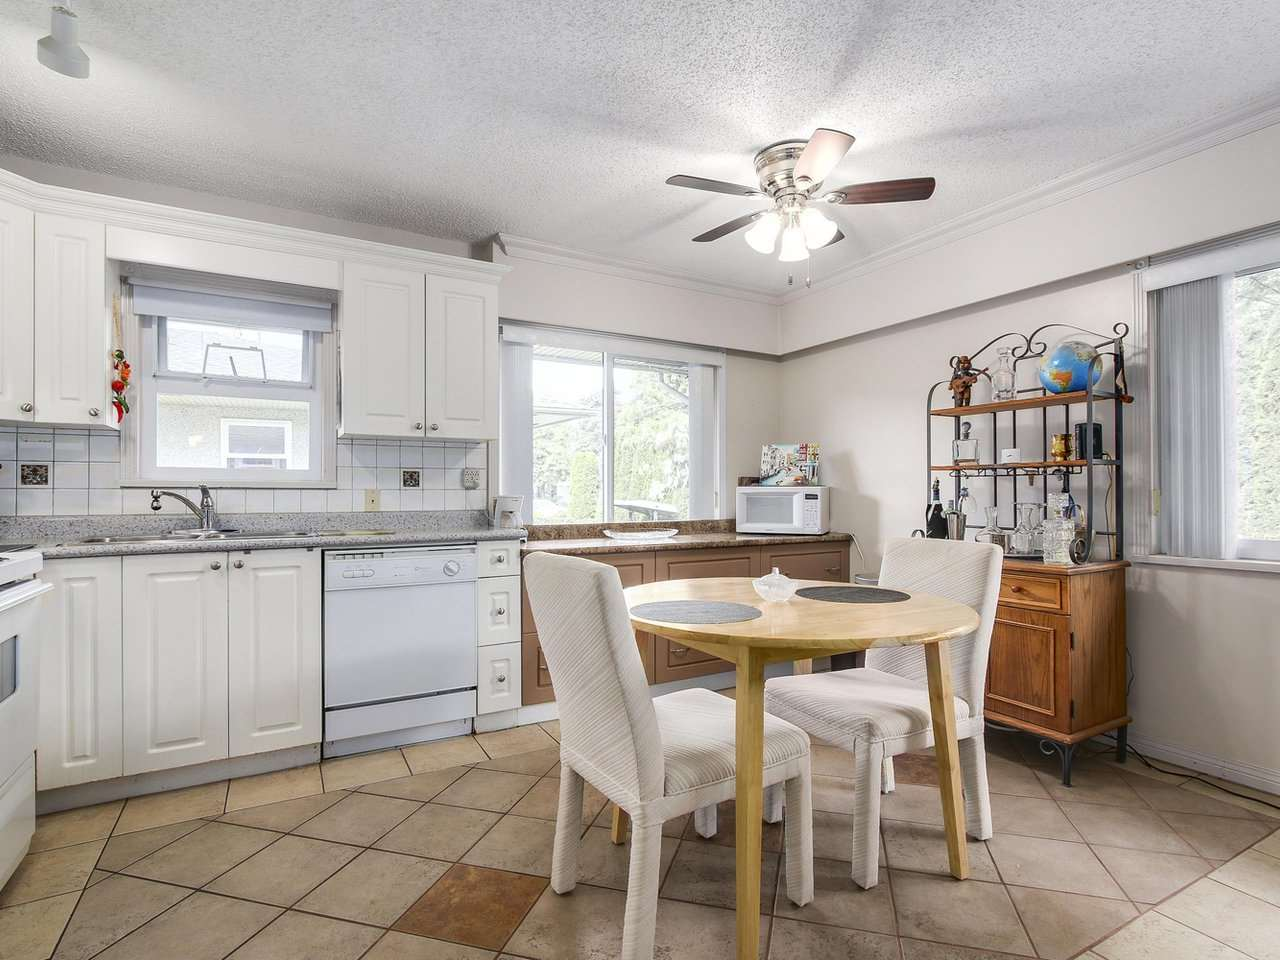 Photo 8: C 5068 47A Avenue in Delta: Ladner Elementary House 1/2 Duplex for sale (Ladner)  : MLS(r) # R2179730